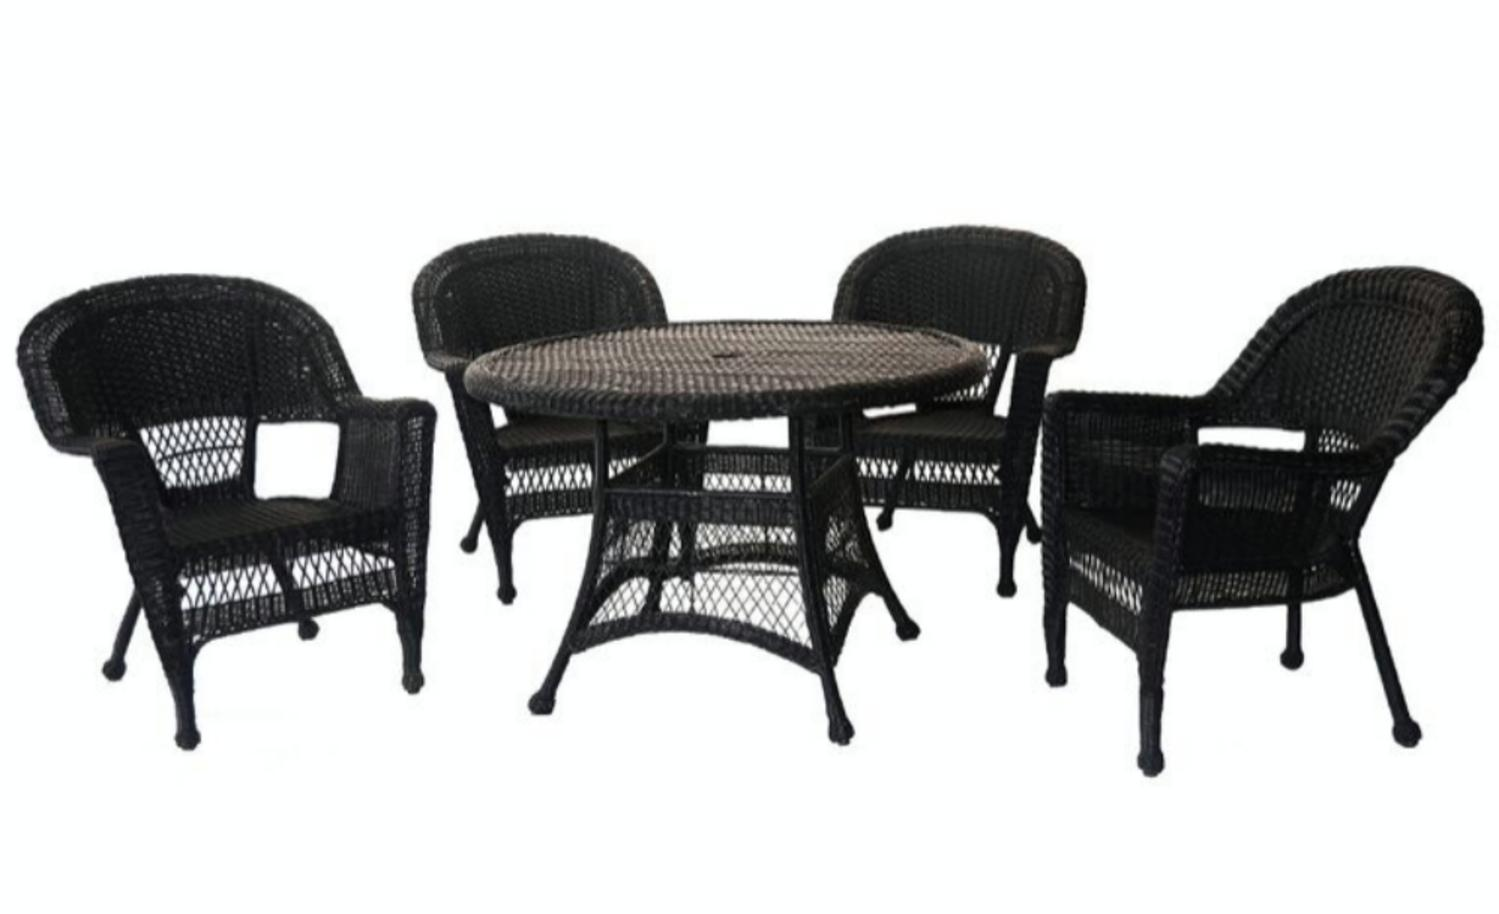 5-Piece Black Resin Wicker Chair and Table Patio Dining Furniture Set by CC Outdoor Living